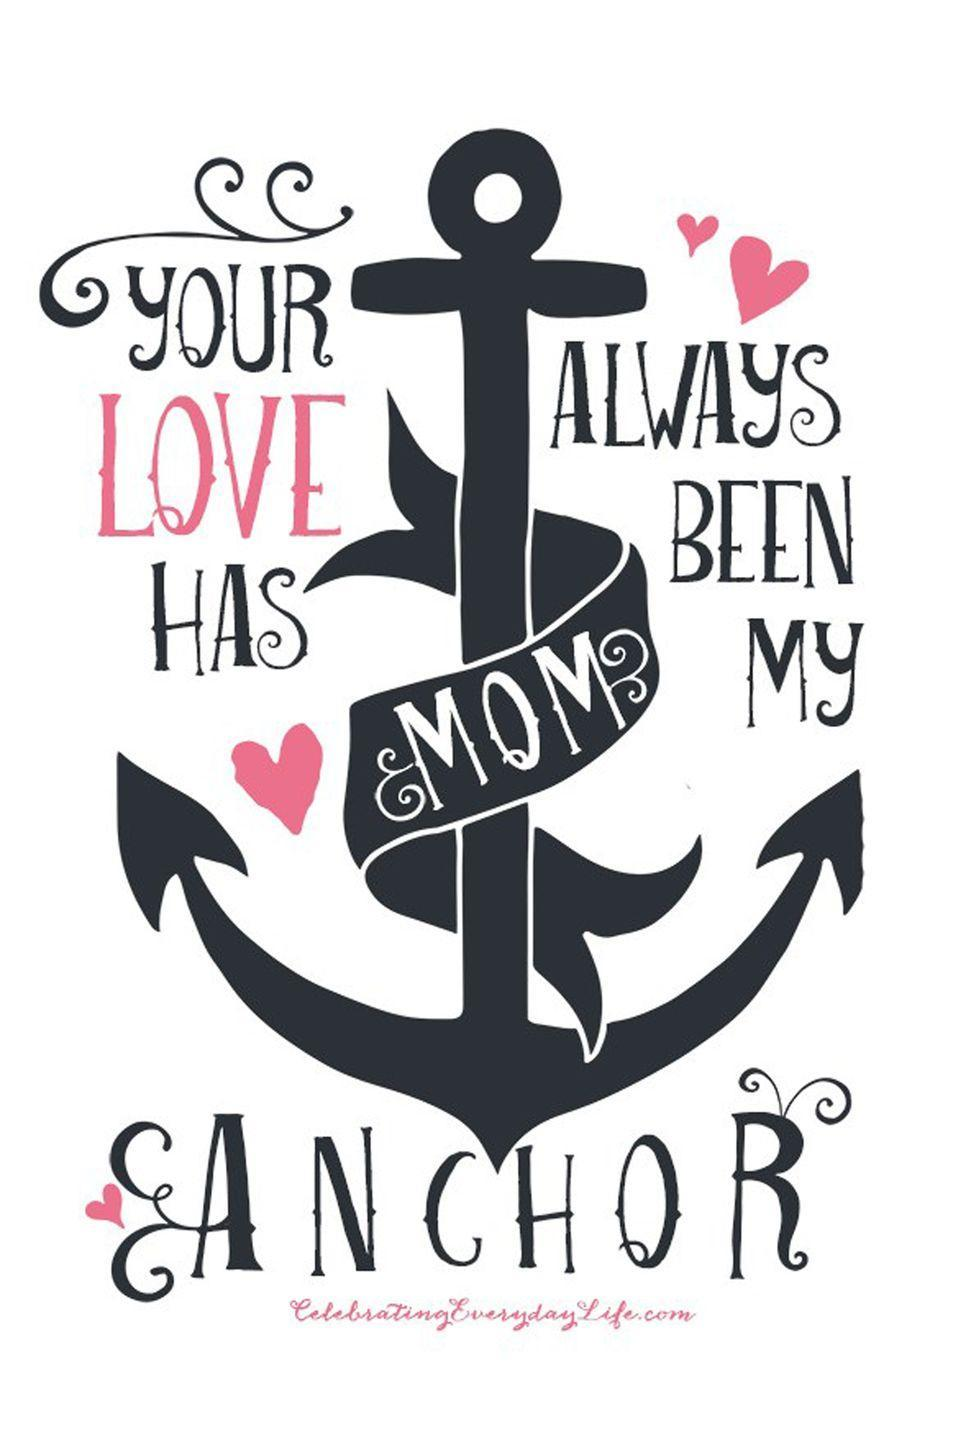 """<p>Share with her your belief that a mother's love is what keeps us grounded.</p><p><strong>Get the printable at <a href=""""http://celebratingeverydaylife.com/mothers-day-printable-your-love-has-always-been-my-anchor/"""" rel=""""nofollow noopener"""" target=""""_blank"""" data-ylk=""""slk:Celebrating Everyday Life"""" class=""""link rapid-noclick-resp"""">Celebrating Everyday Life</a>.</strong></p>"""